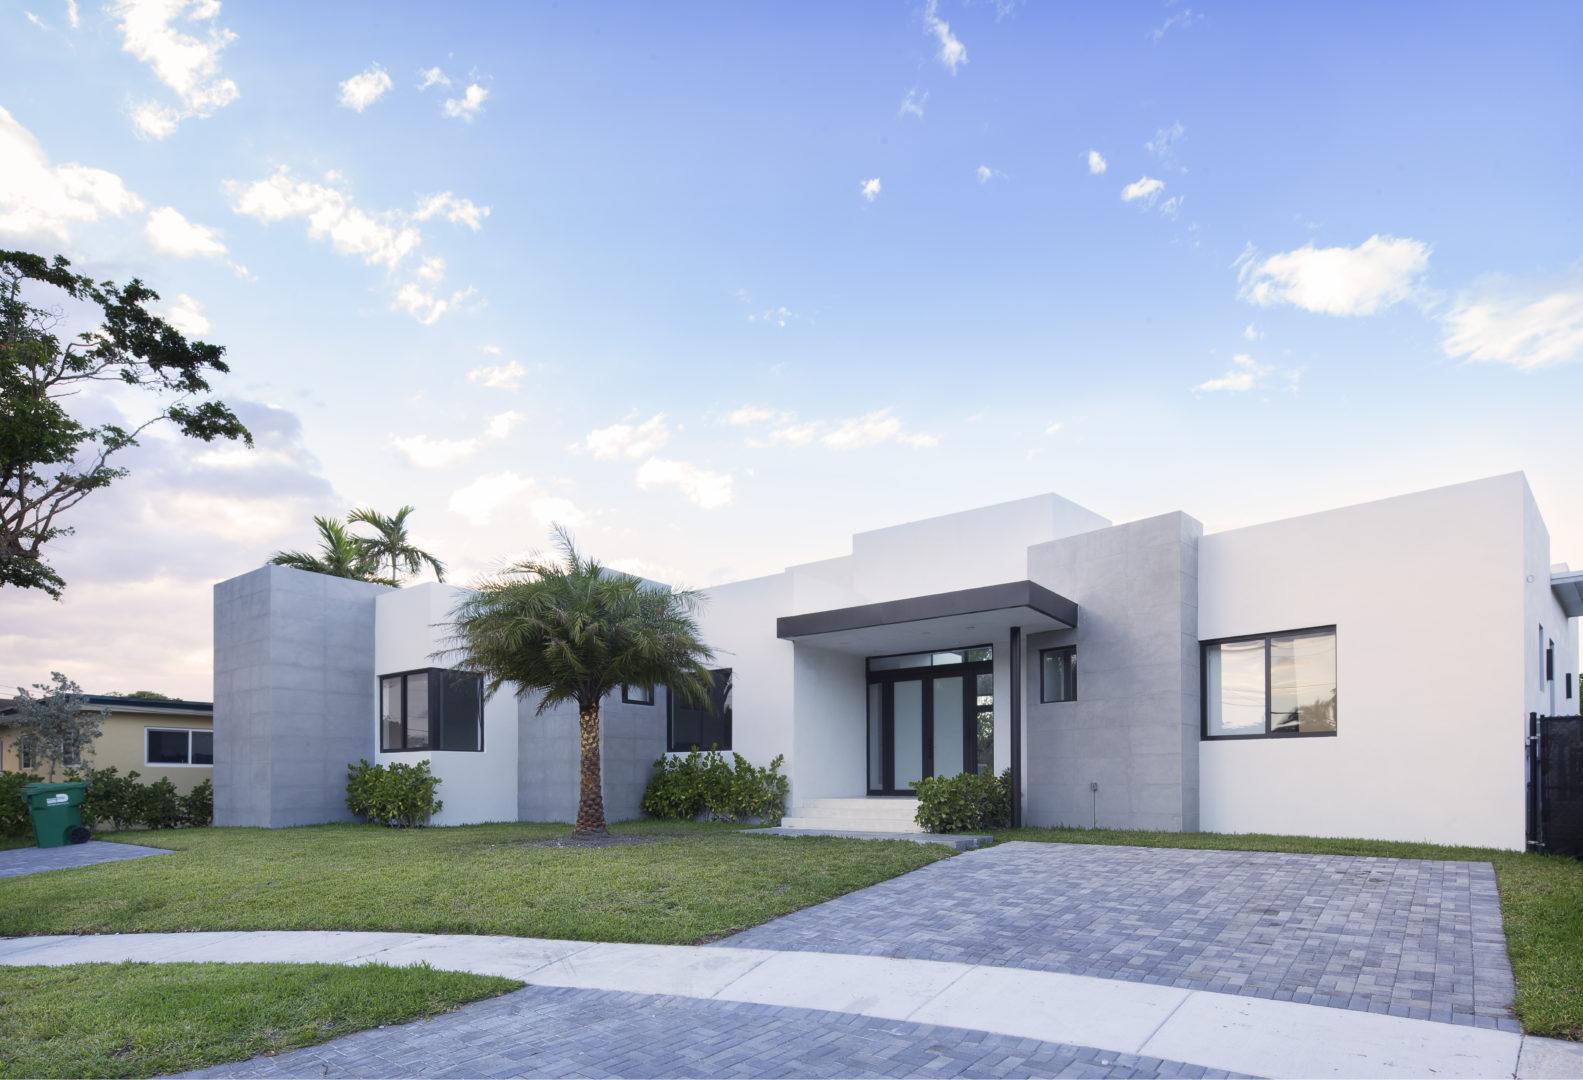 Miami Home Architecture Construction Residence Builder Contractor driveway landscape